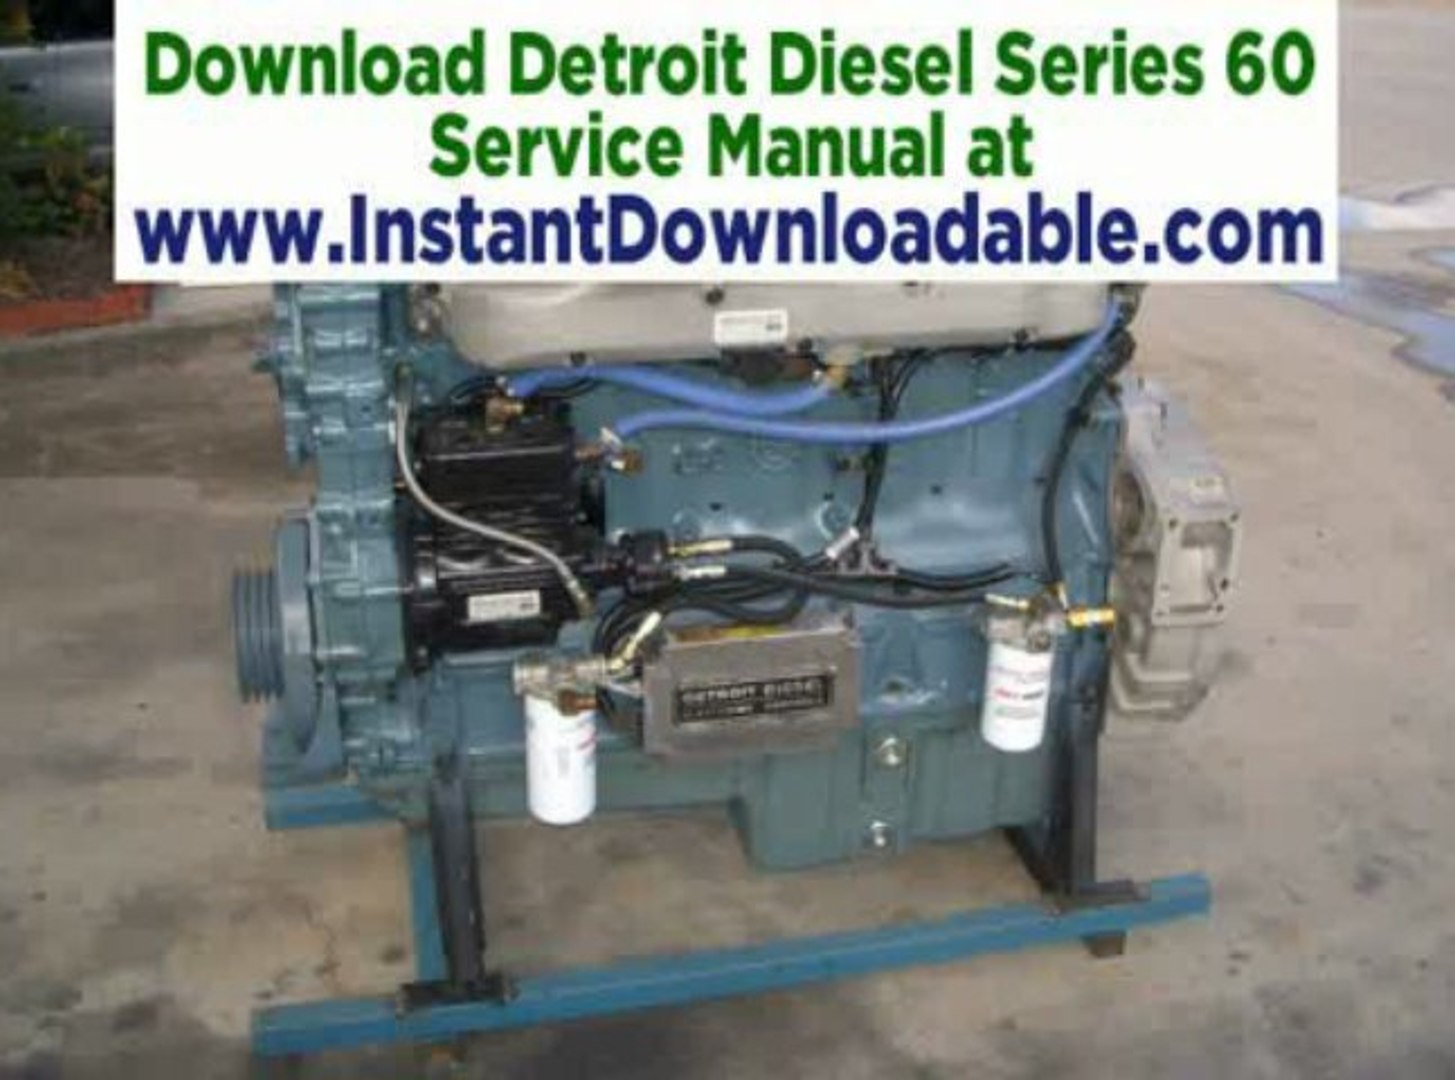 Detroit Diesel Series 60 >> Re Detroit Diesel Series 60 Turbo Blown Failure Theory And Logic Mci Bus Download Serice Manual